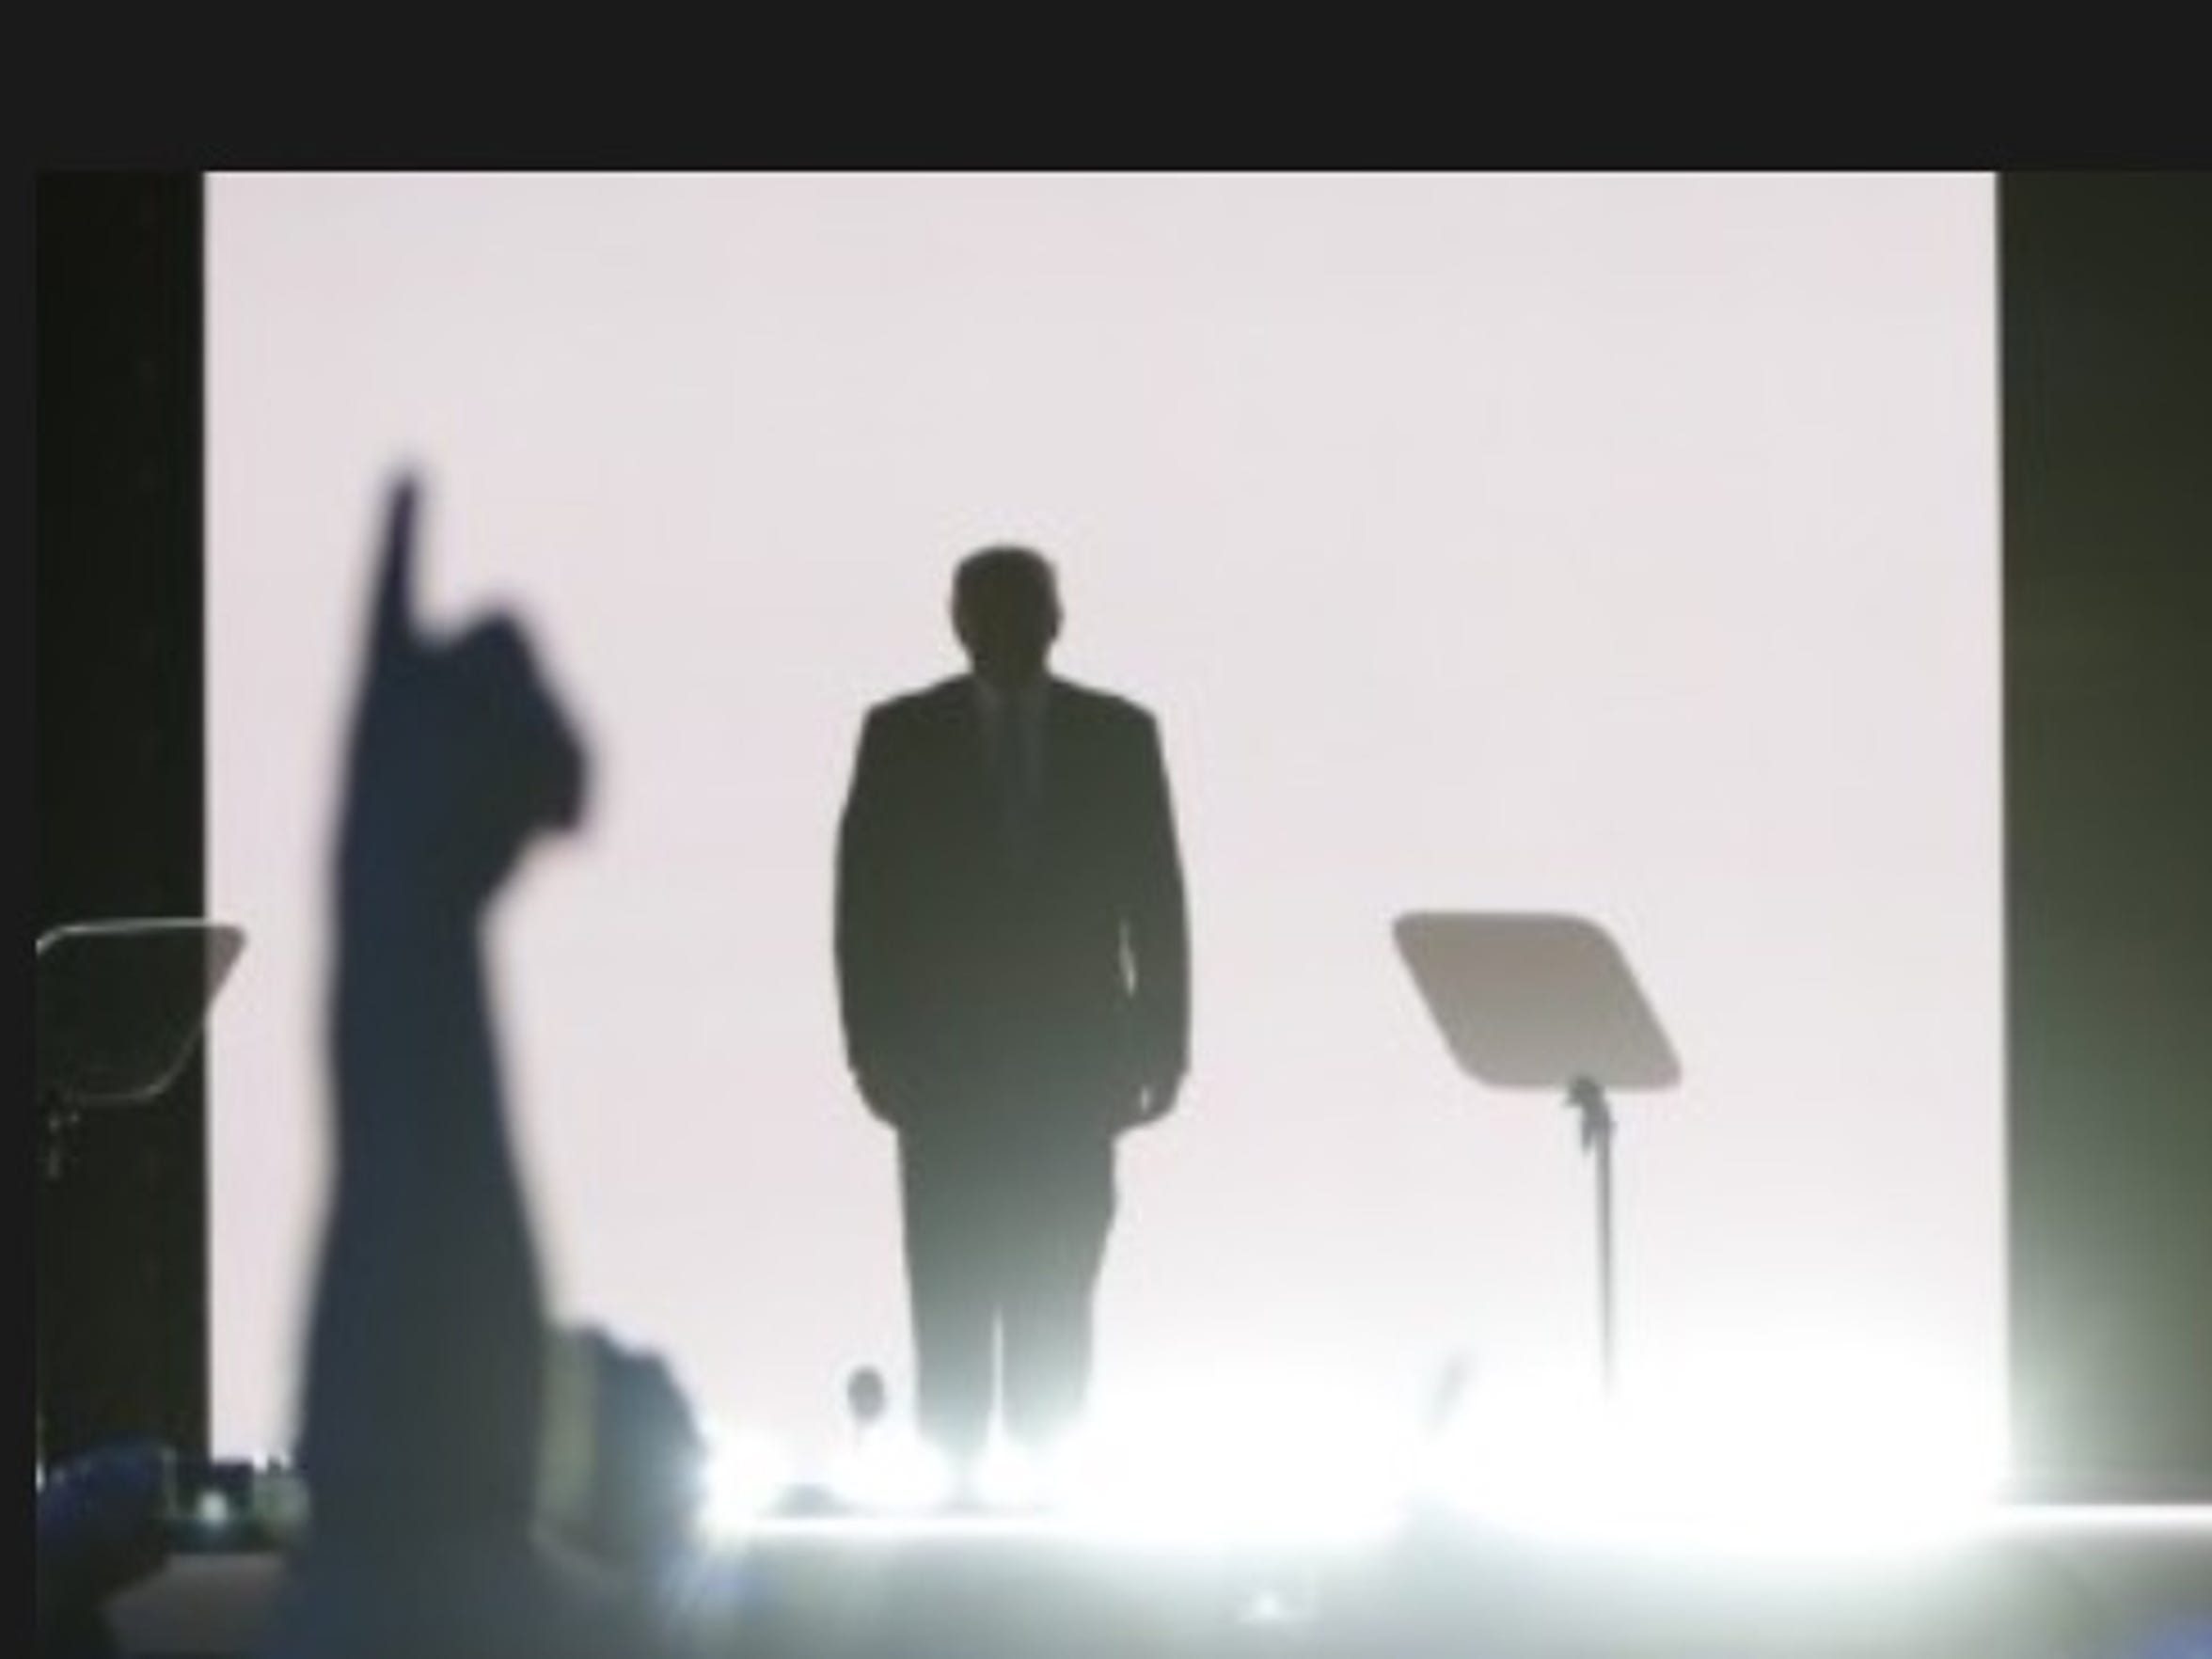 Trump's arrival on stage.